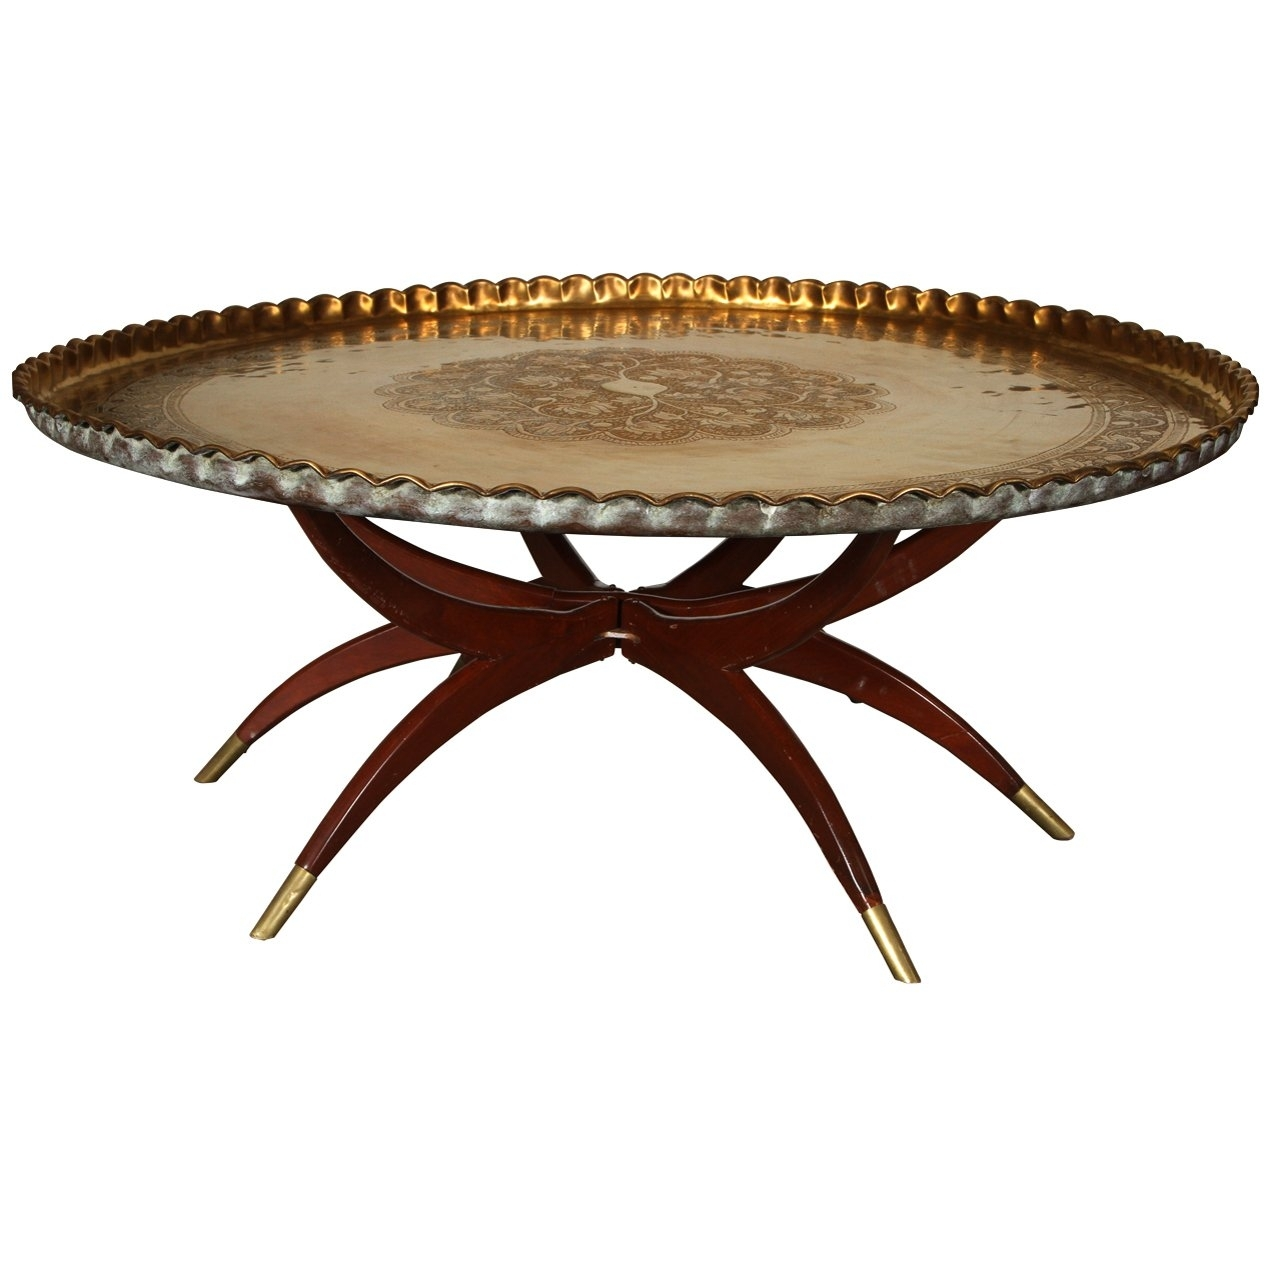 Large Round Tray For Ottoman Ideas On Foter